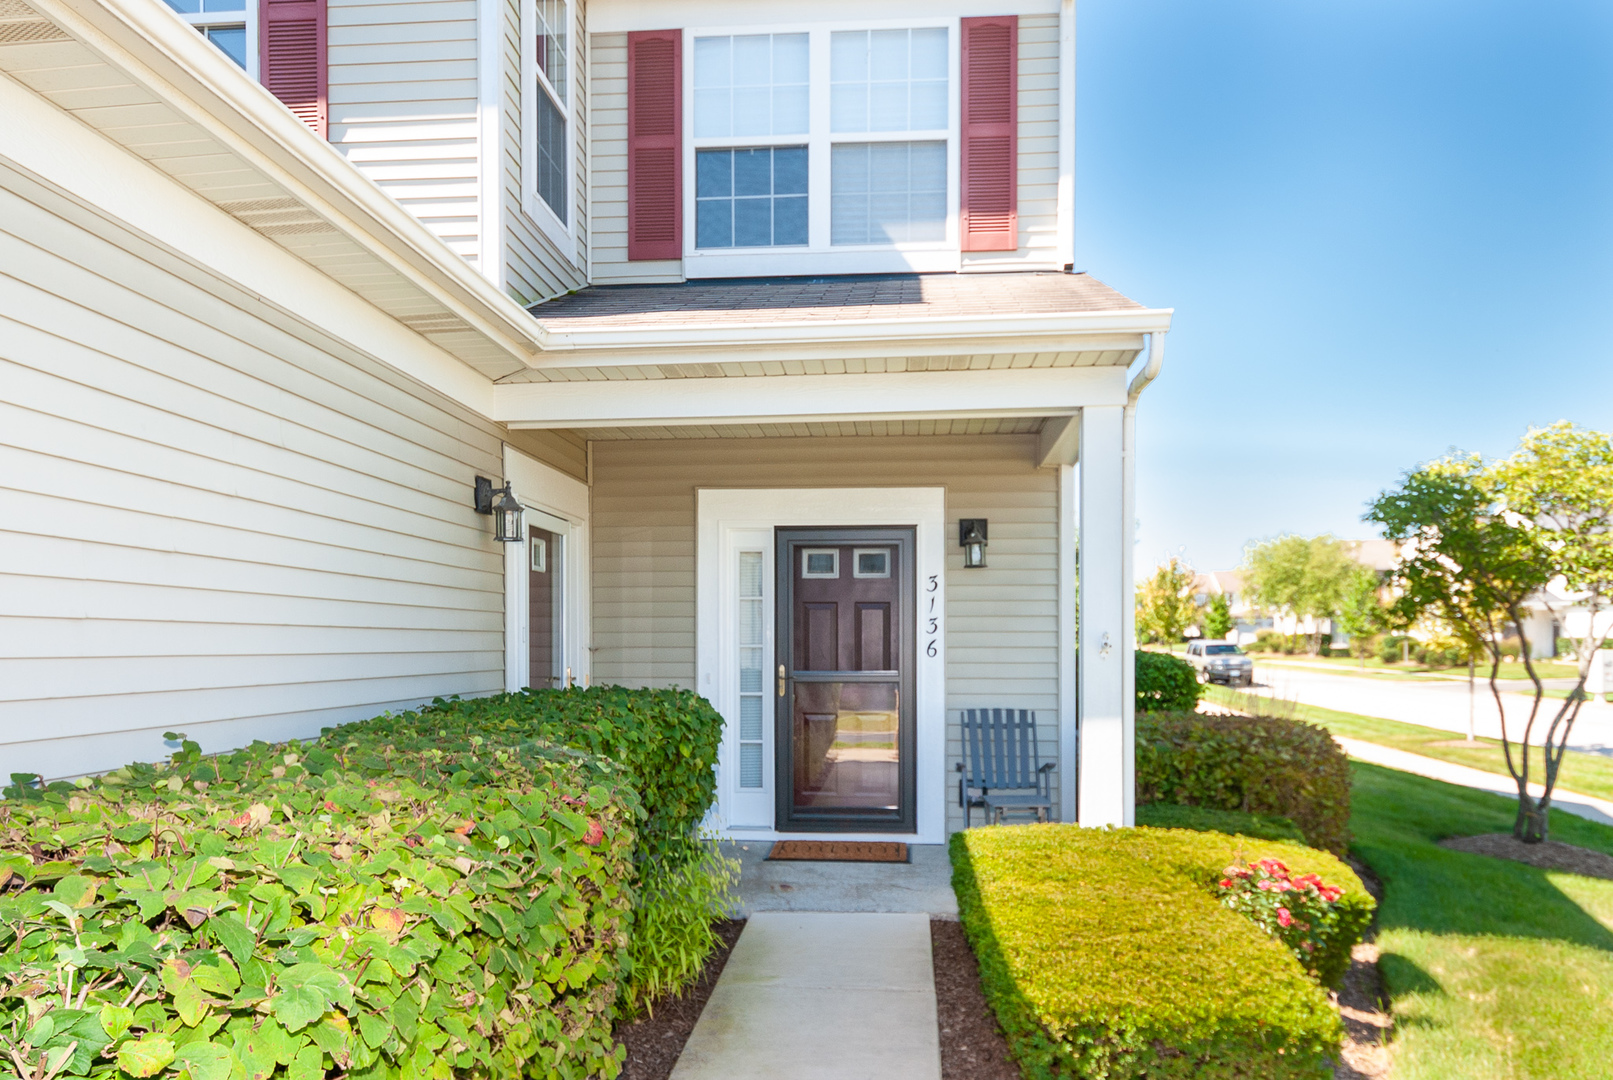 3136 Falling Waters Lane, Unit 1, Lindenhurst, Illinois 60046